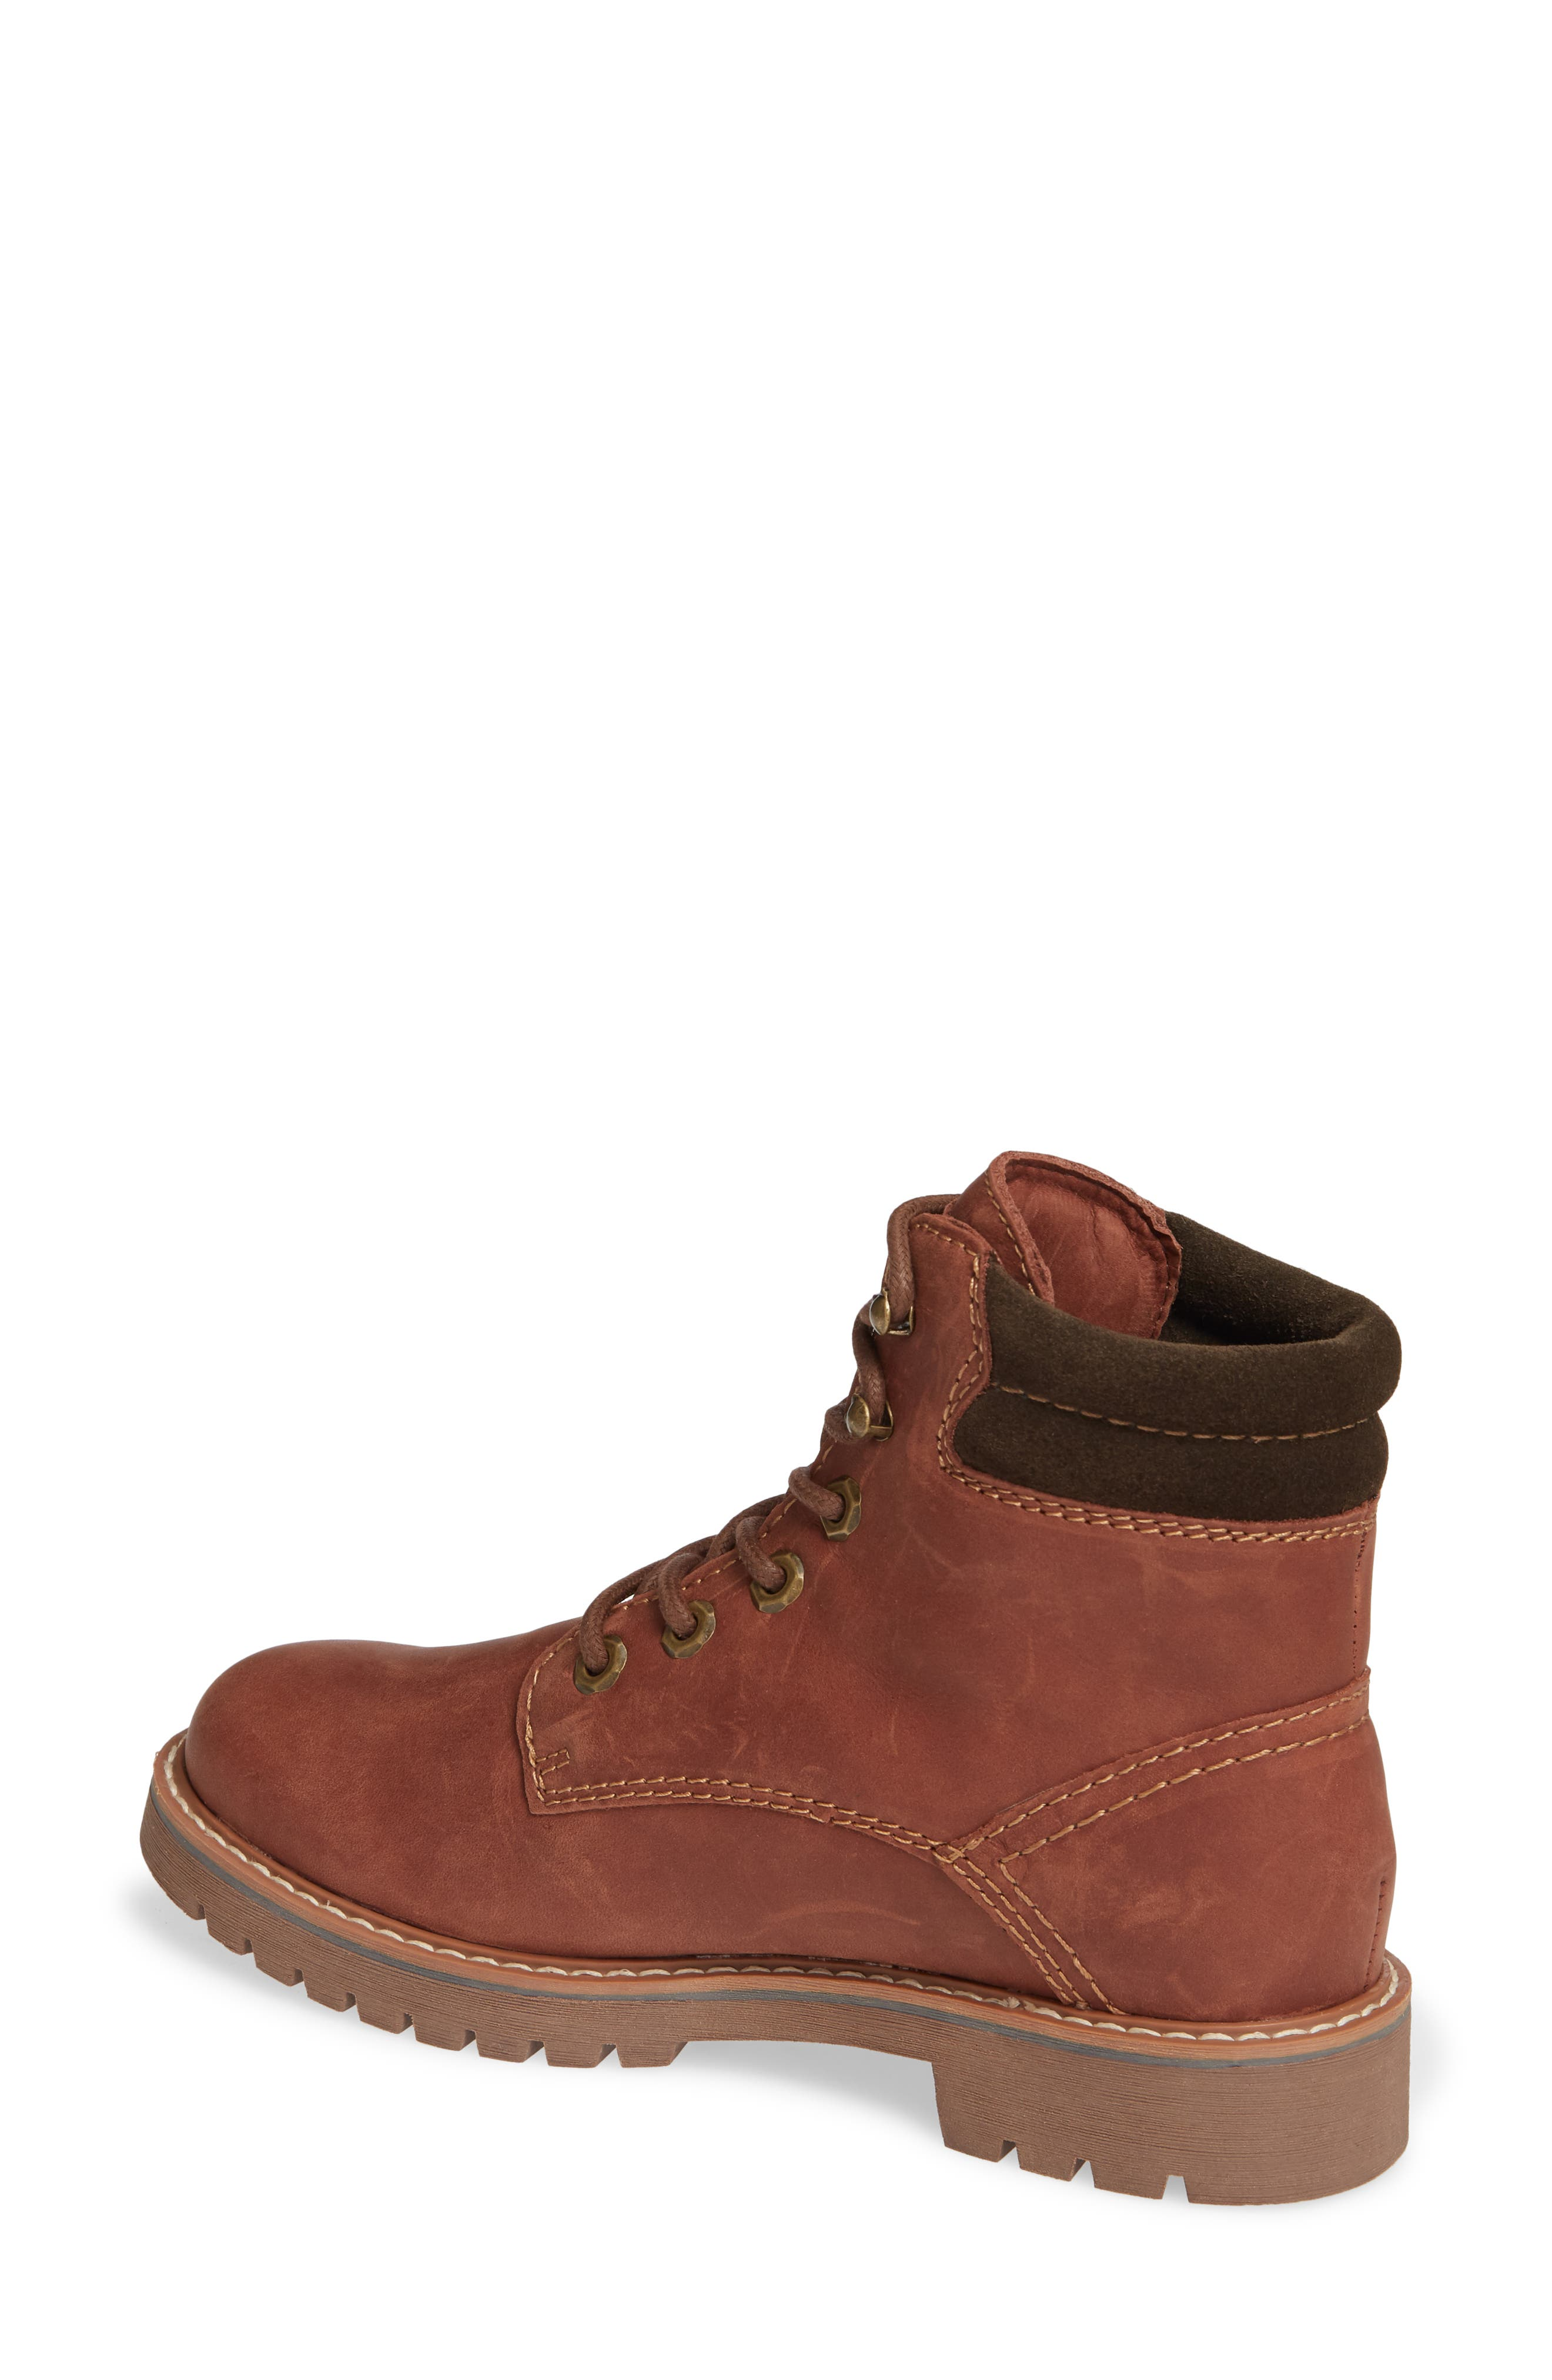 Heston Waterproof Insulated Hiking Boot,                             Alternate thumbnail 2, color,                             BROWN LEATHER